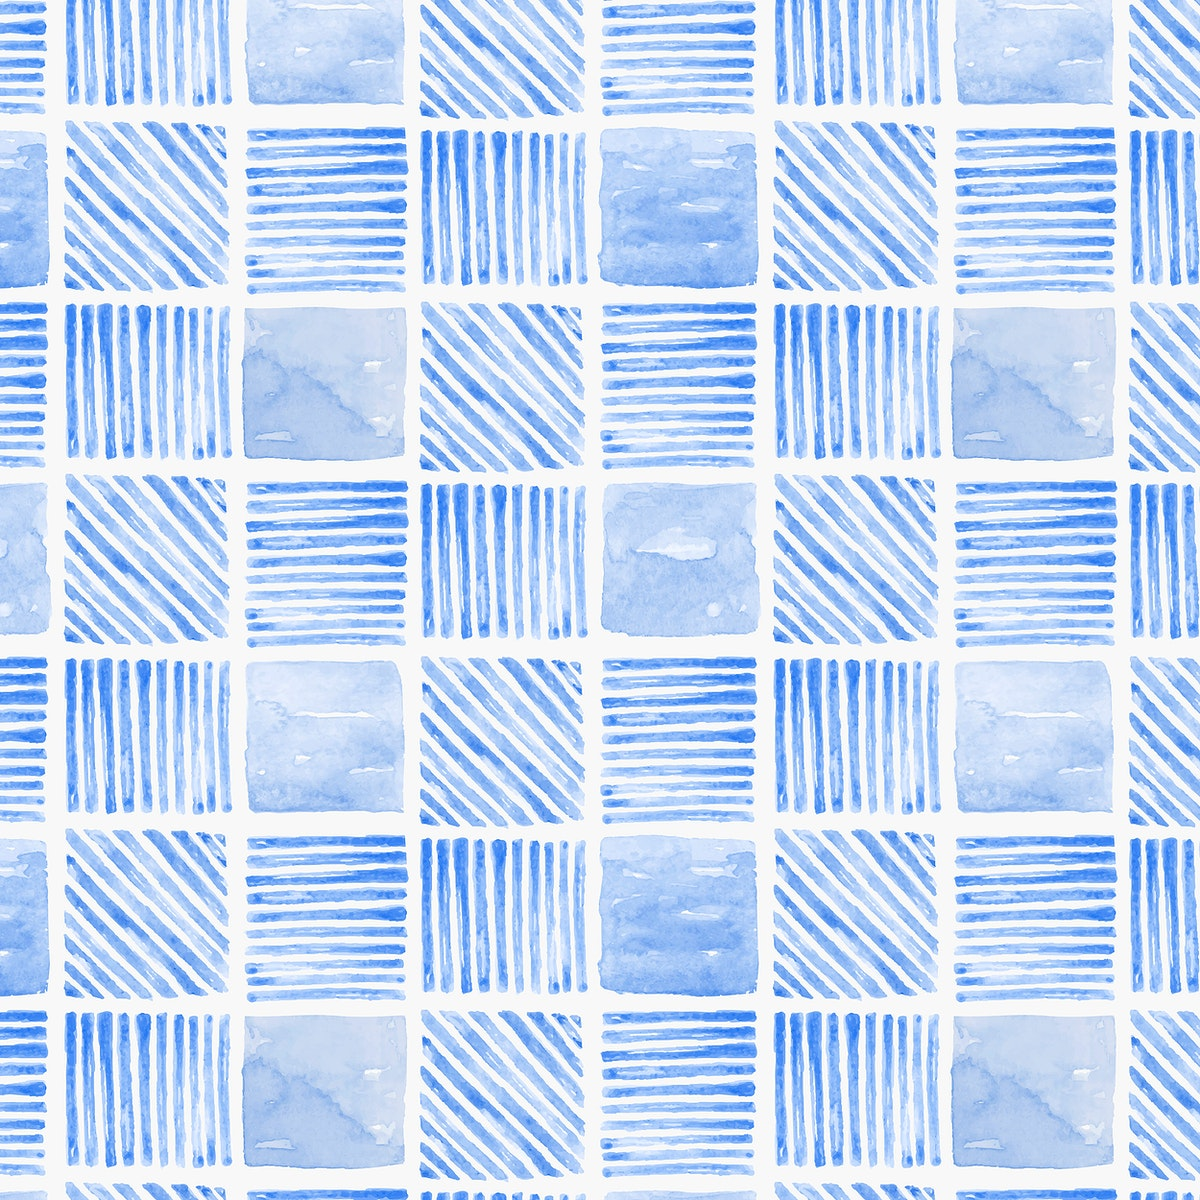 Indigo blue watercolor geometric seamless patterned background vector